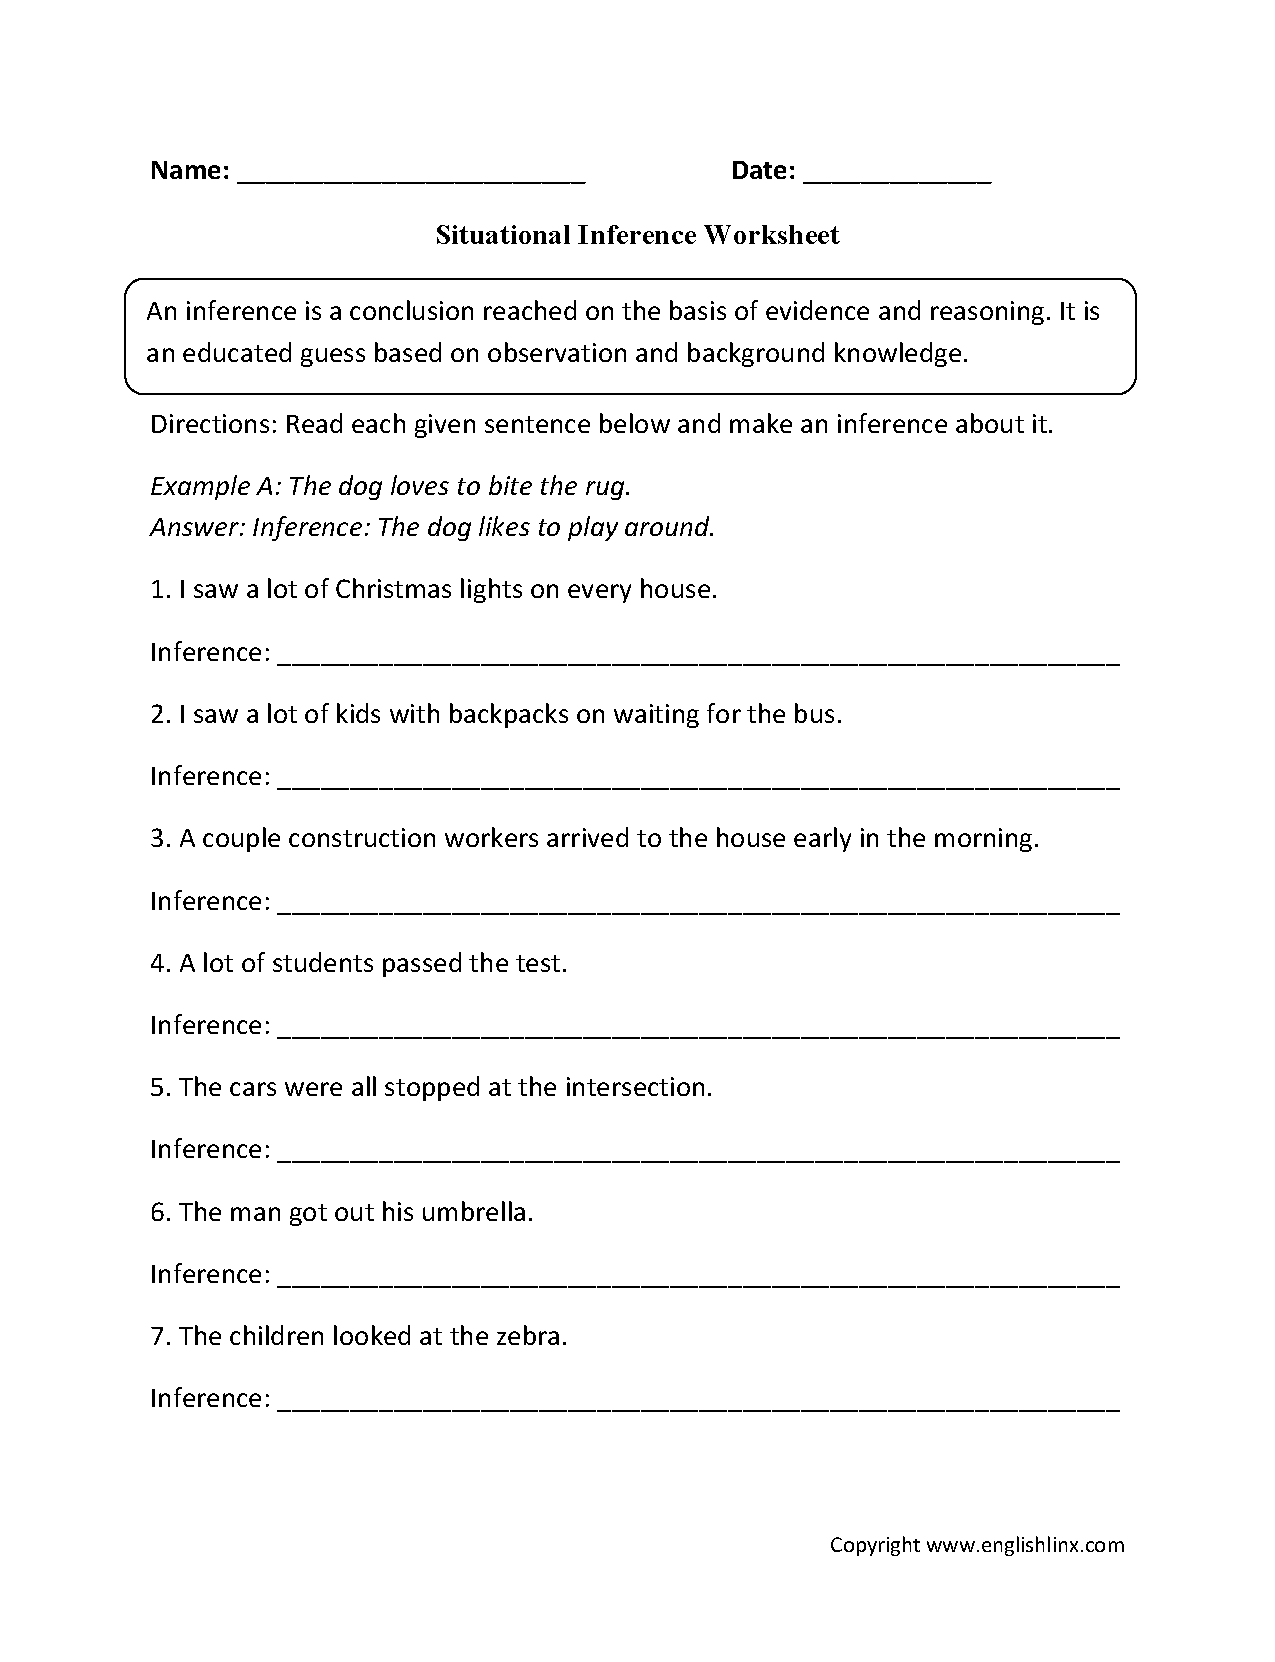 Free Worksheet Inference Worksheets 4th Grade reading worksheets inference worksheets